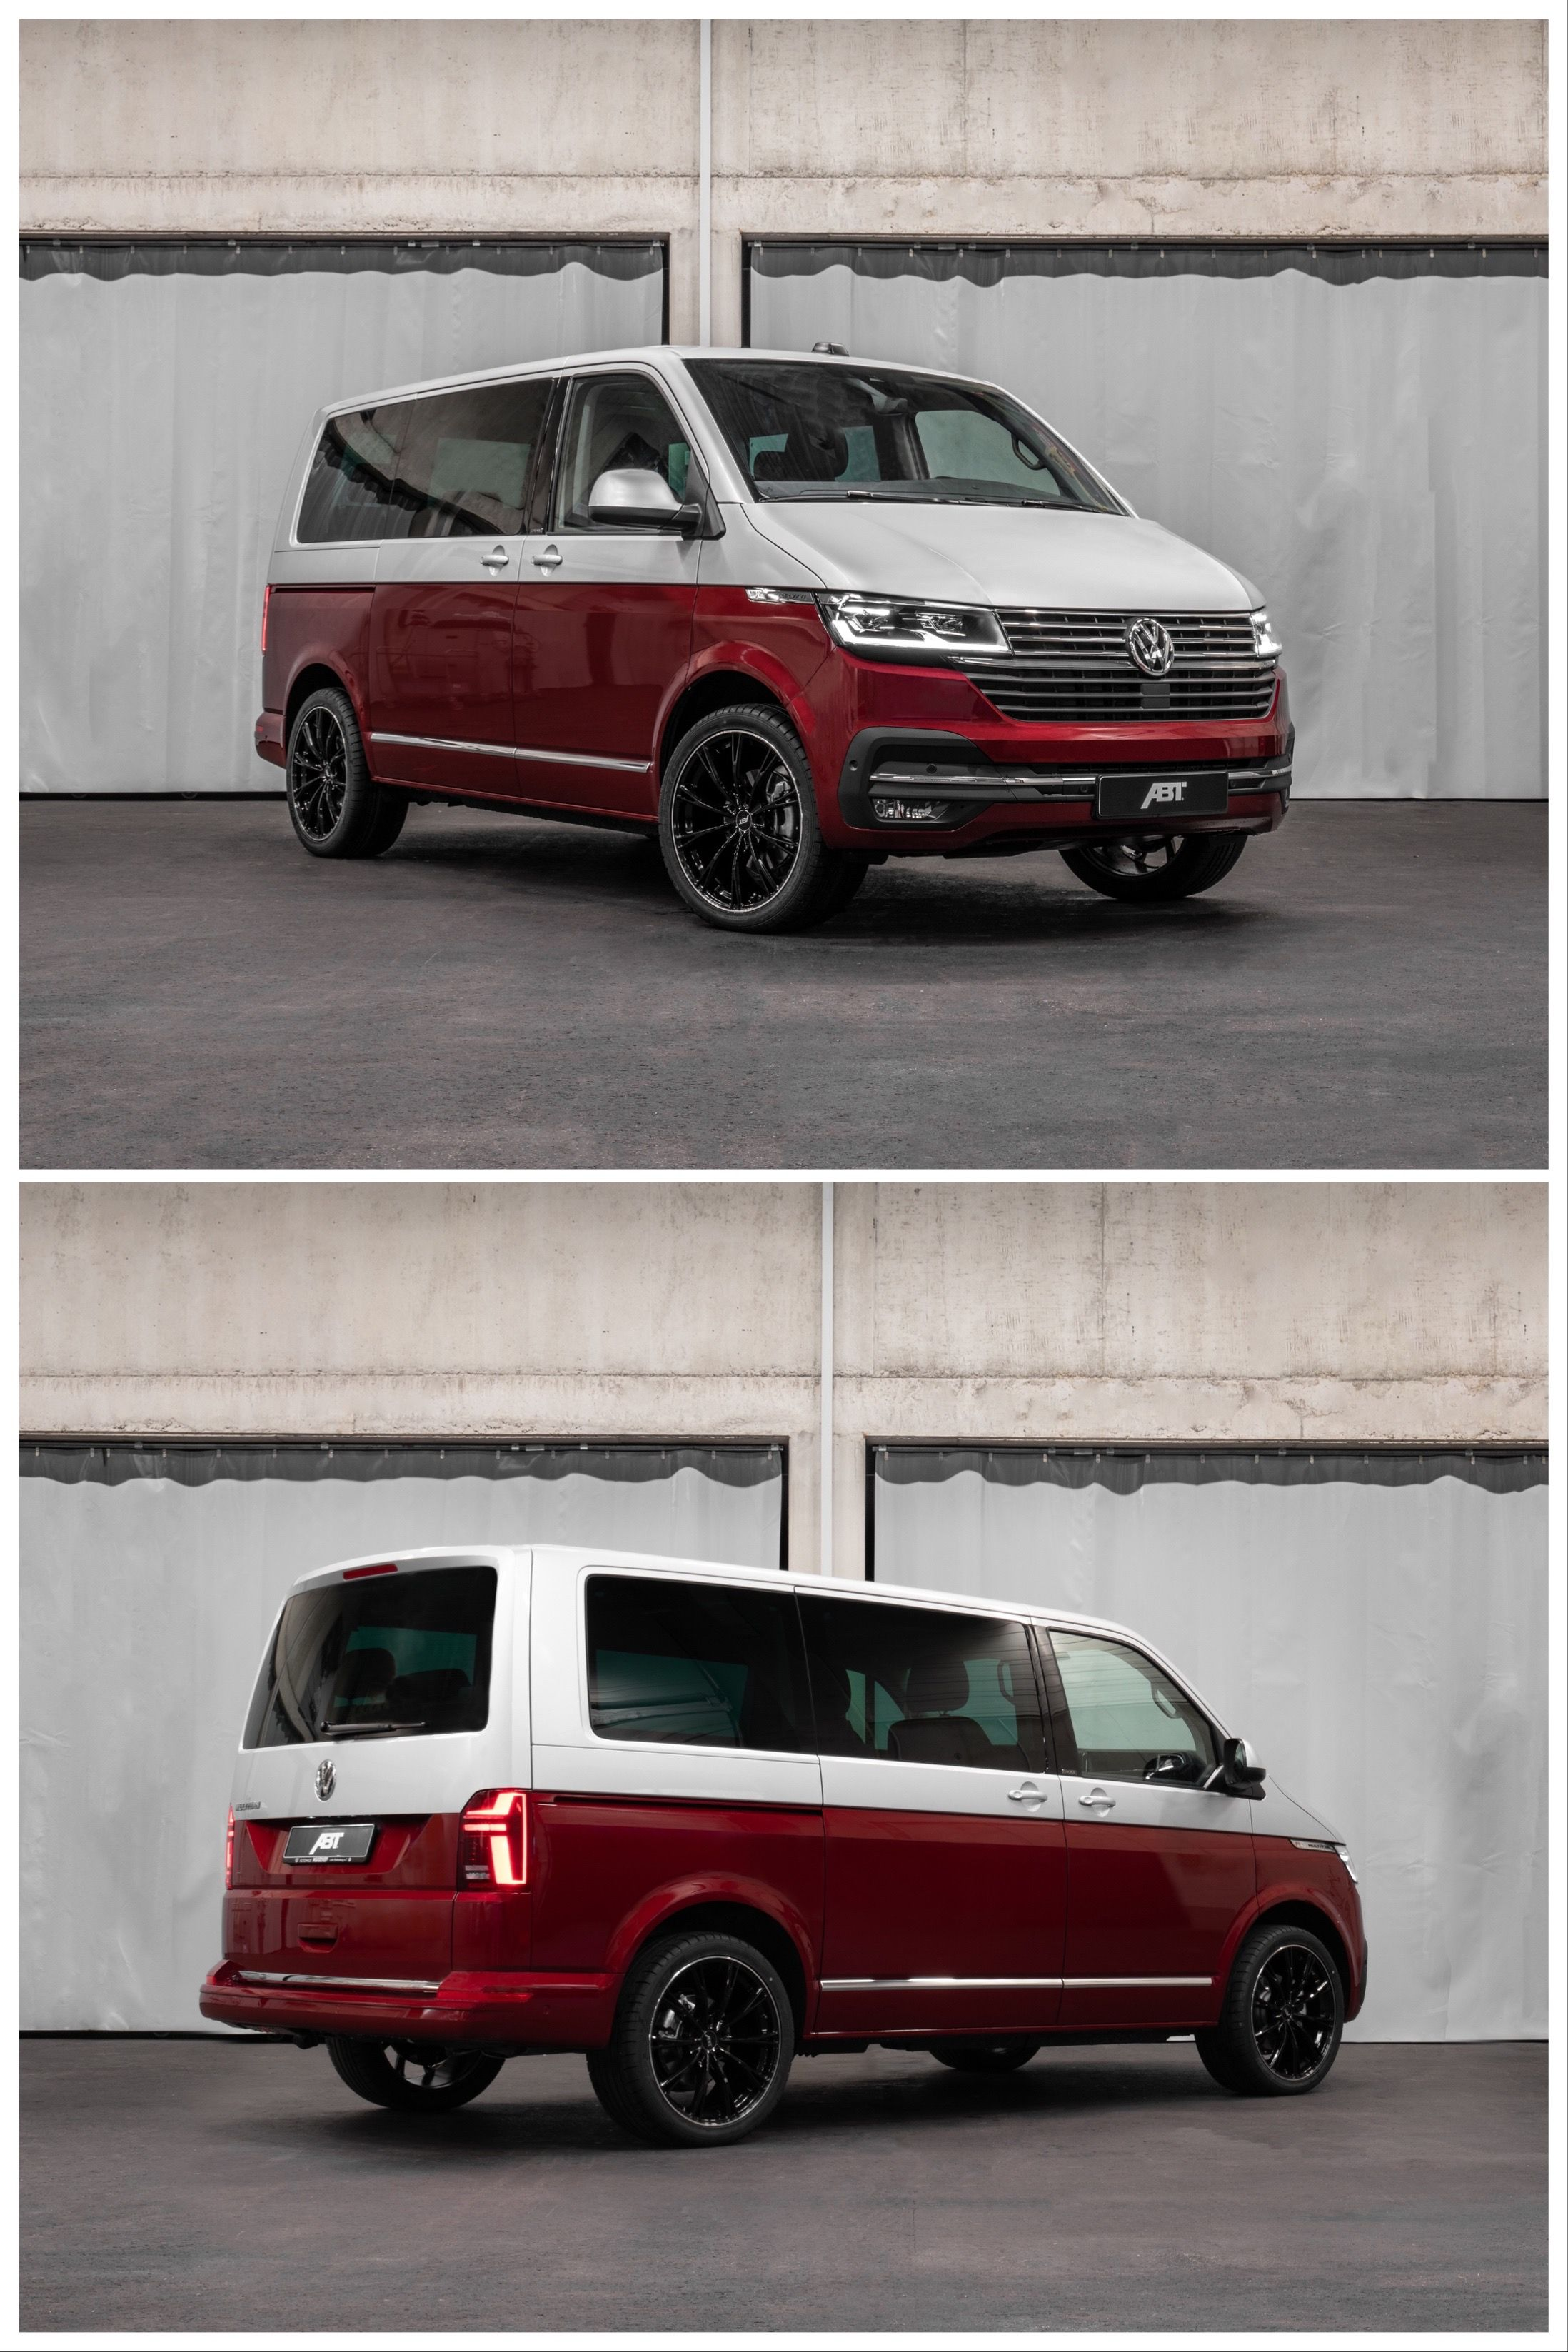 Vw Tuner Abt S Kit Boosts The T6 Van S Diesel Performance With Up